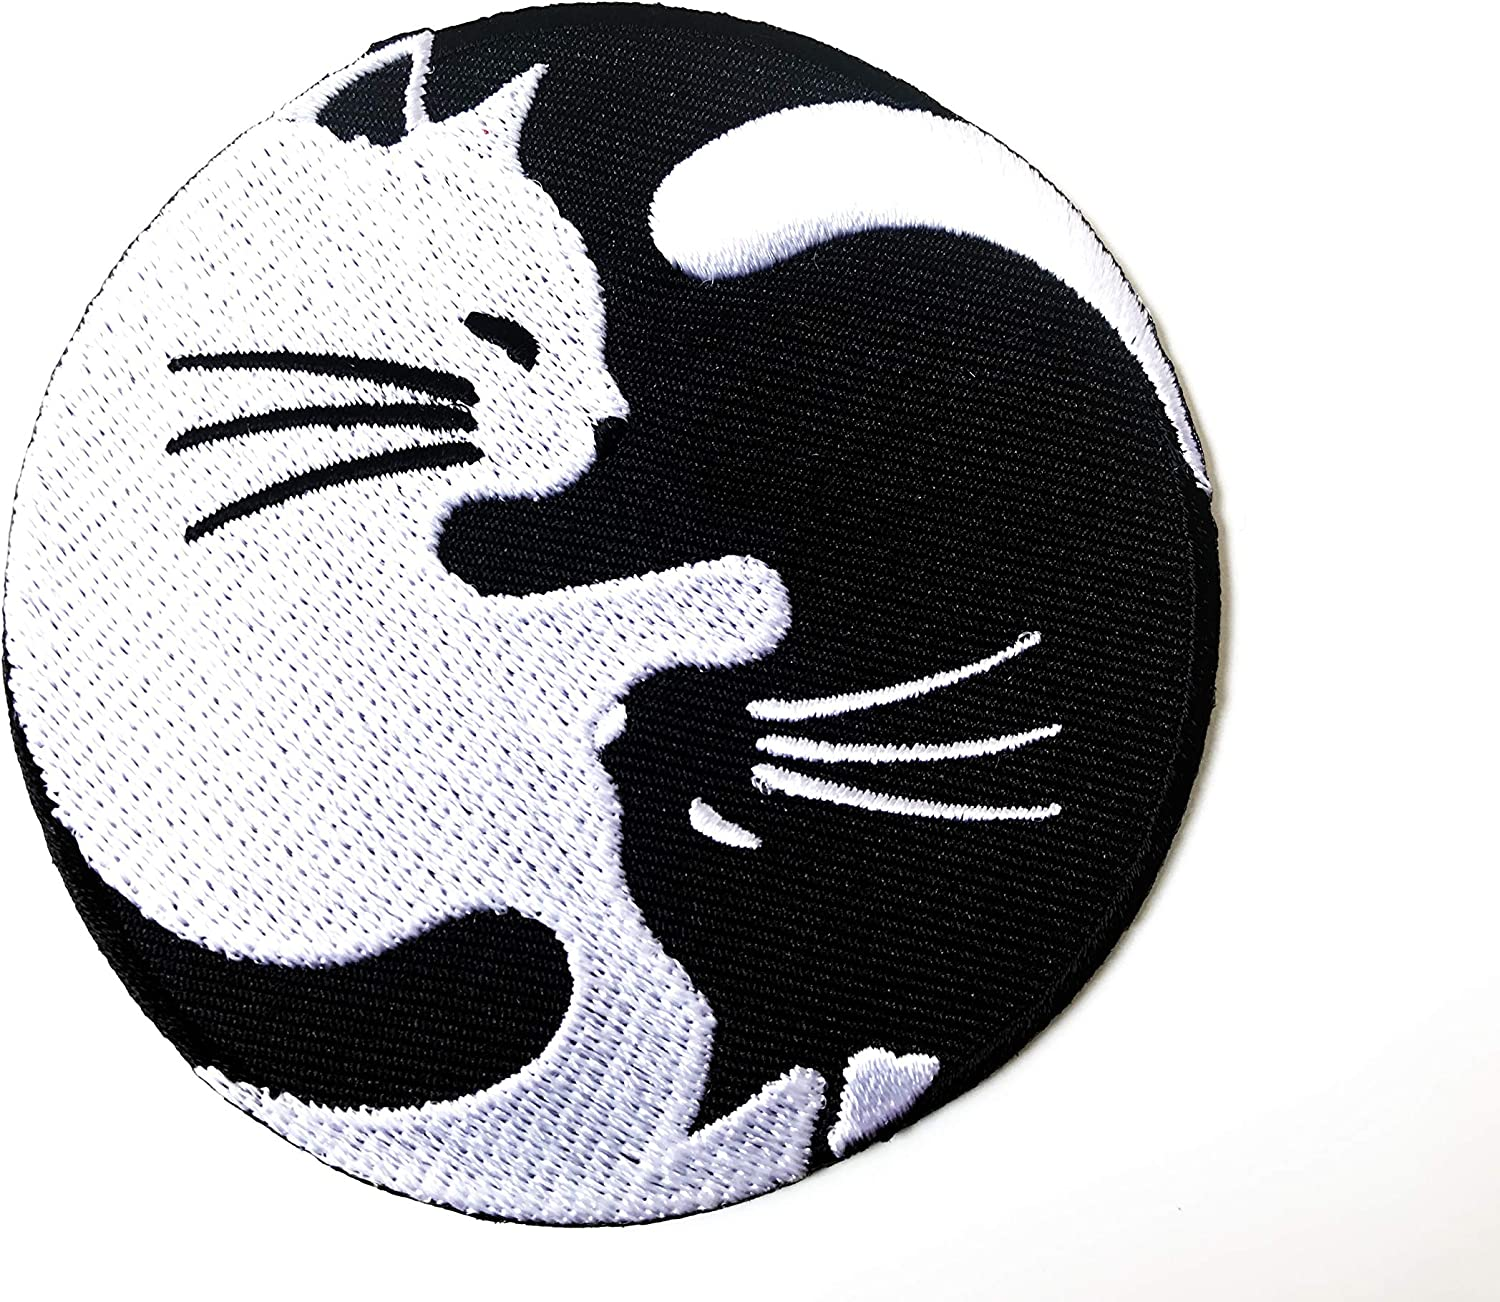 Cat Yin Yang Kung Fu Chinese Tao Balance Sign Symbol Logo T-Shirt Costume Applique Embroidered Sew Iron on Patch